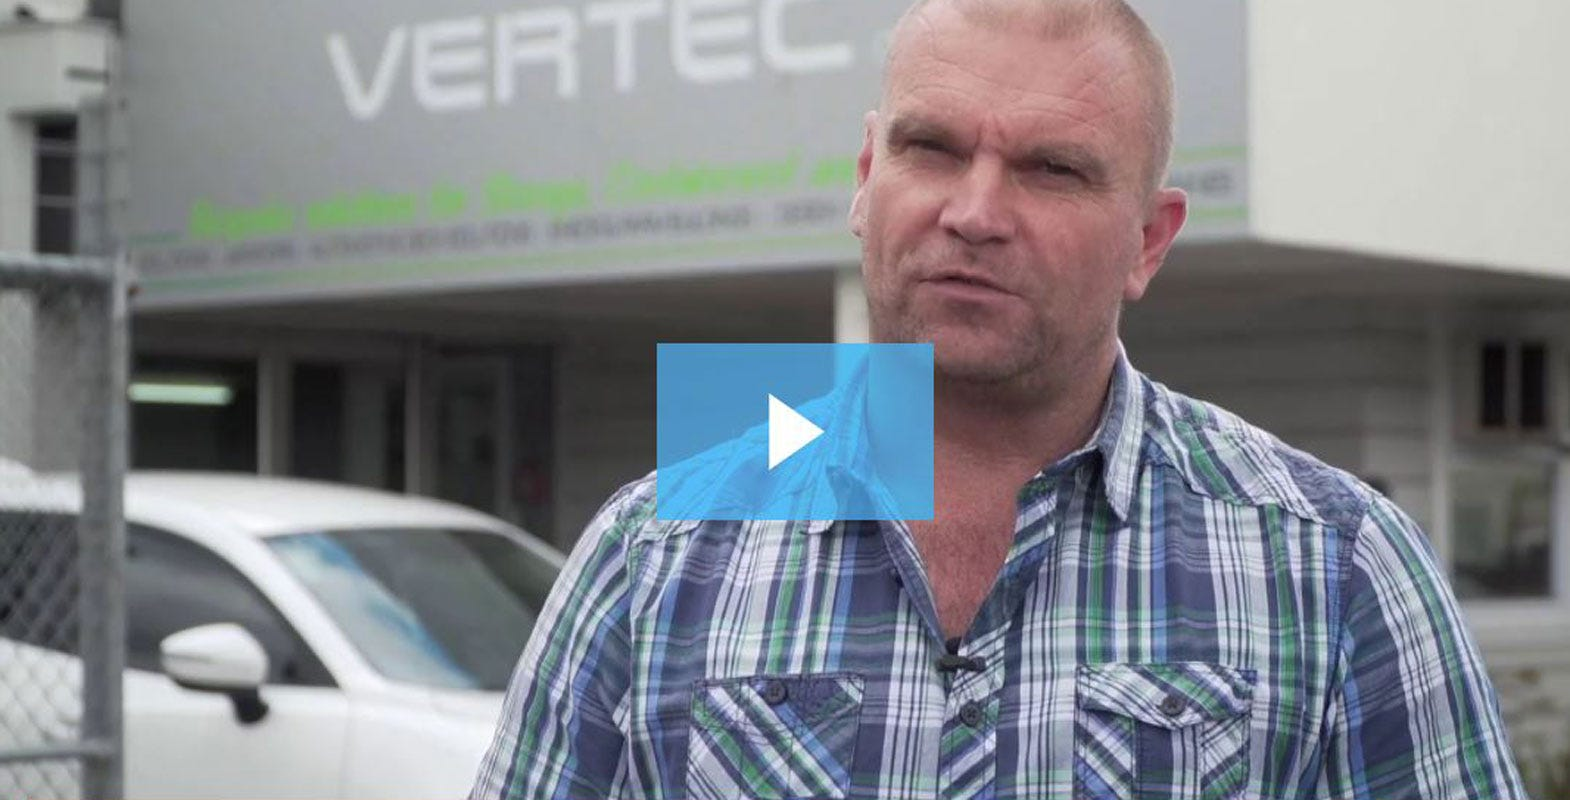 Here's how Vertec saved time & money!